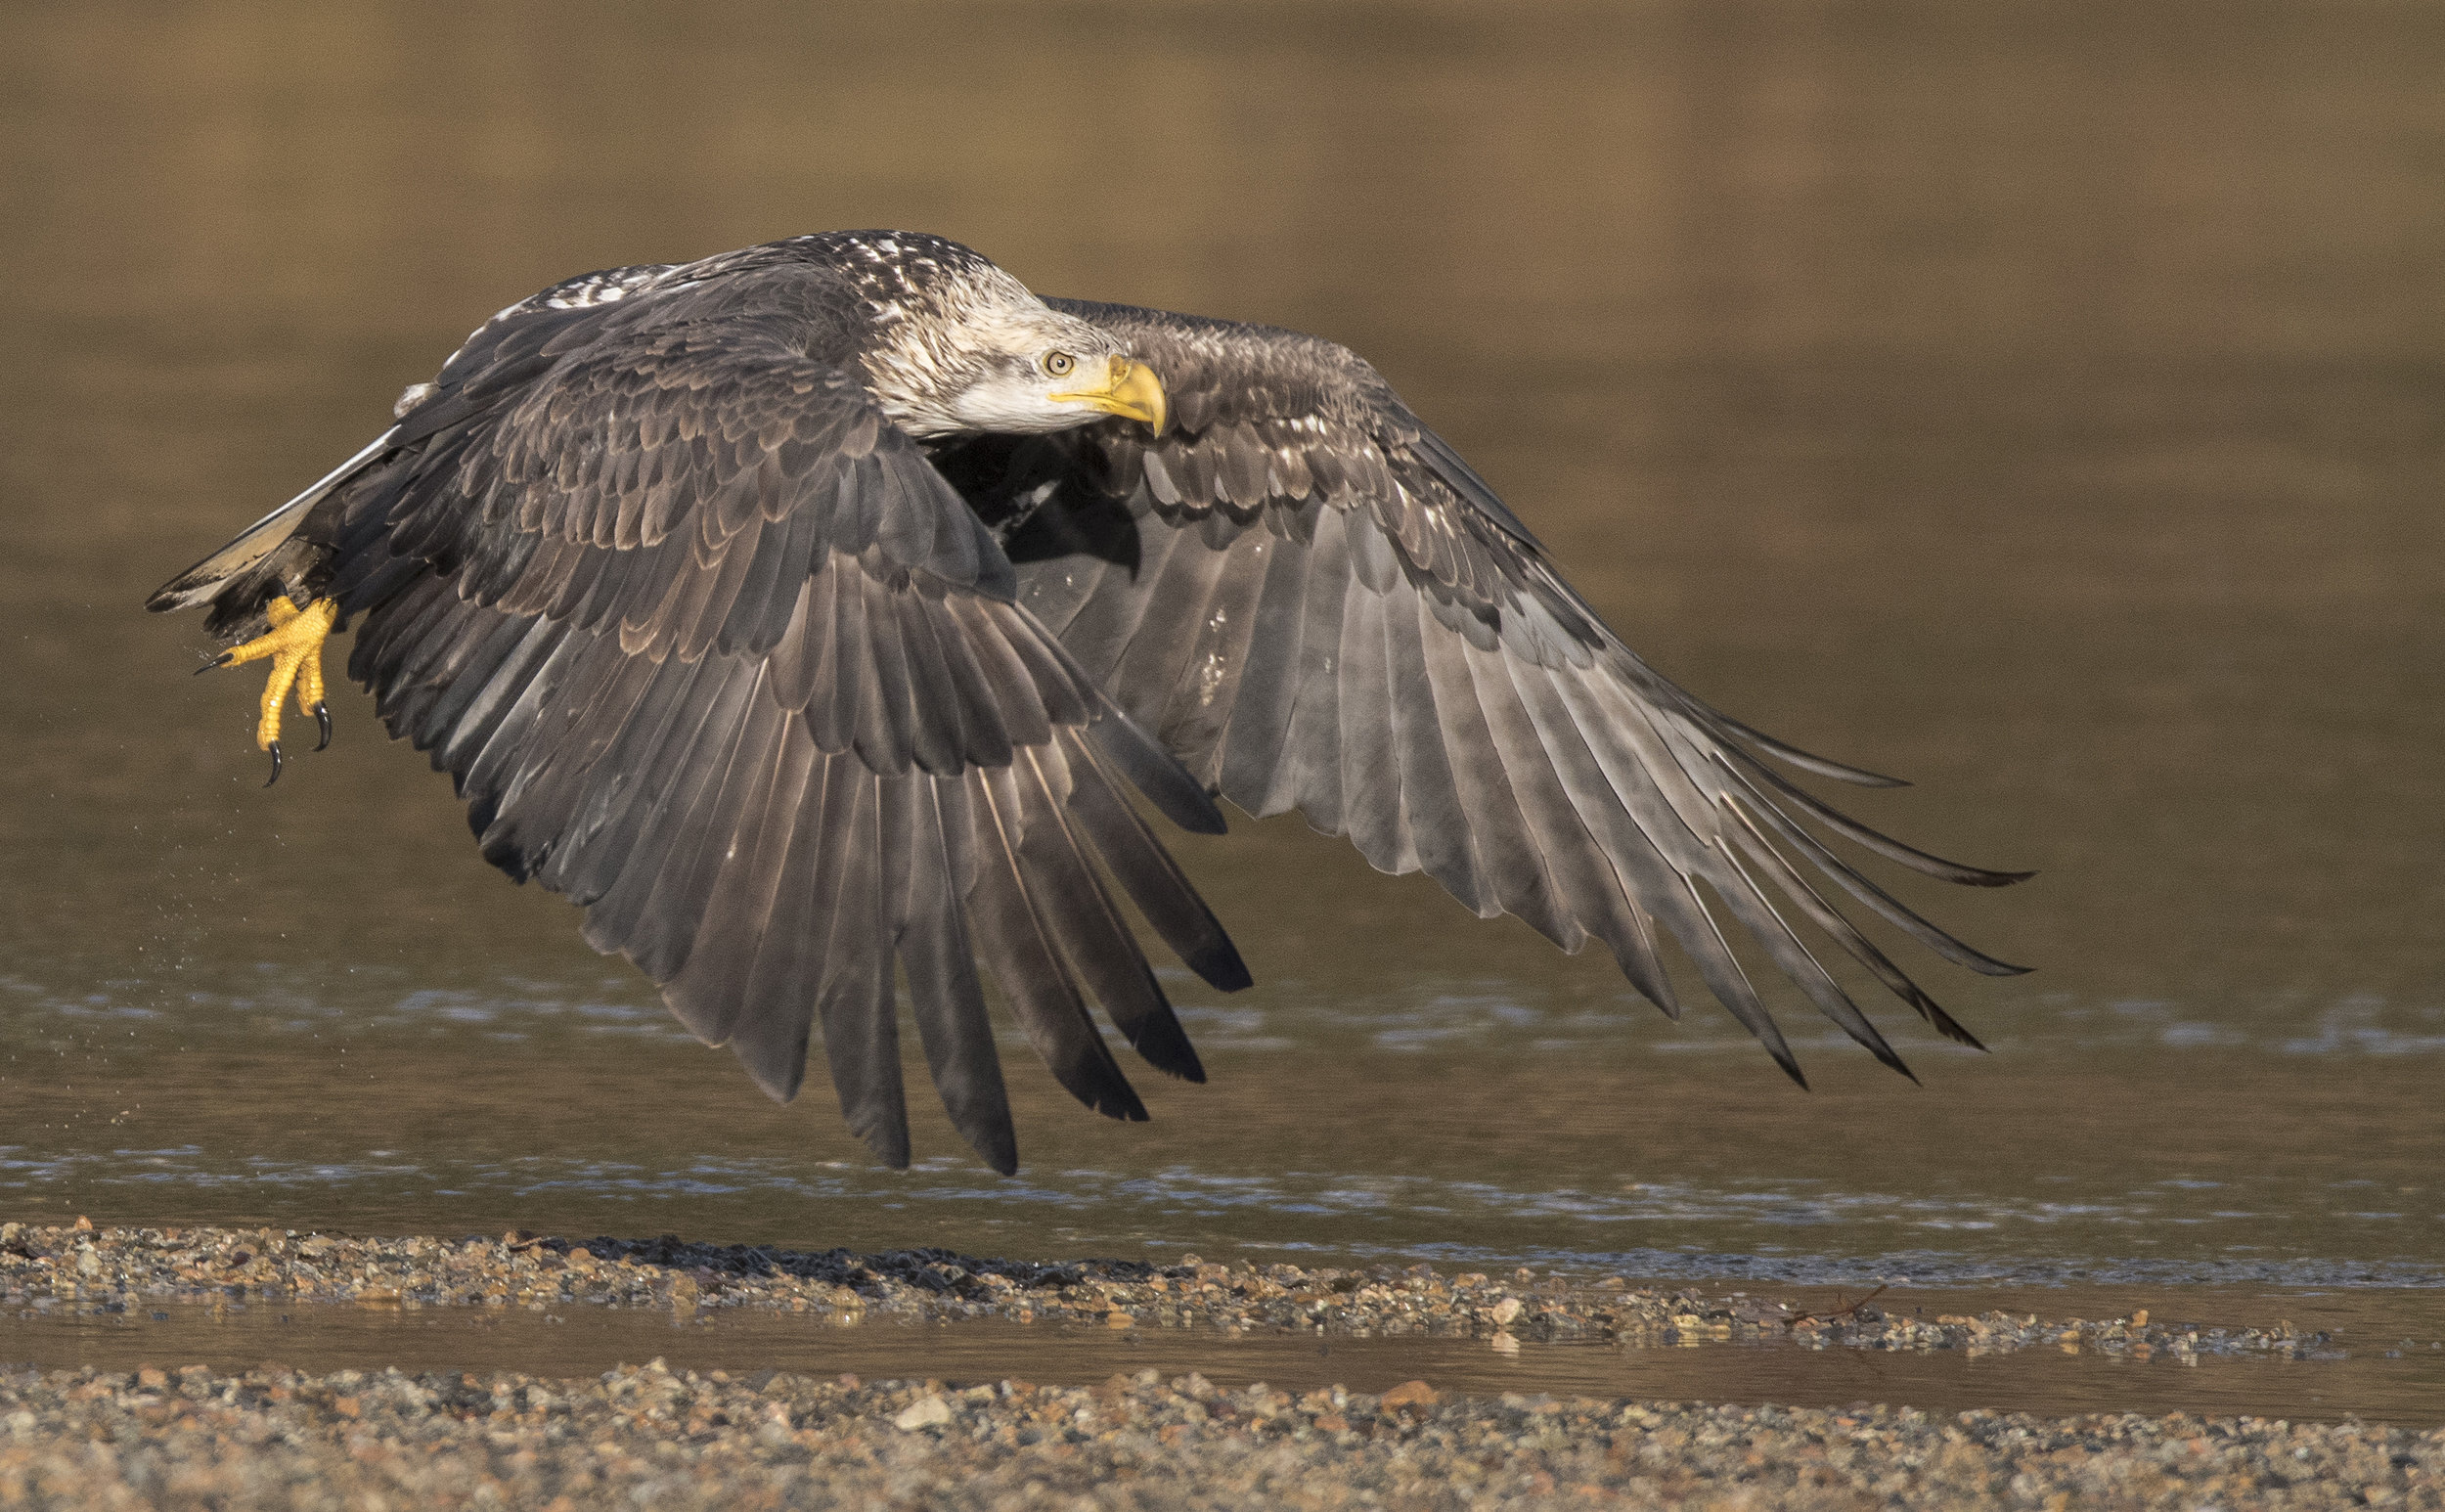 bald eagle in flight at Fraer valley eagle festival.jpg